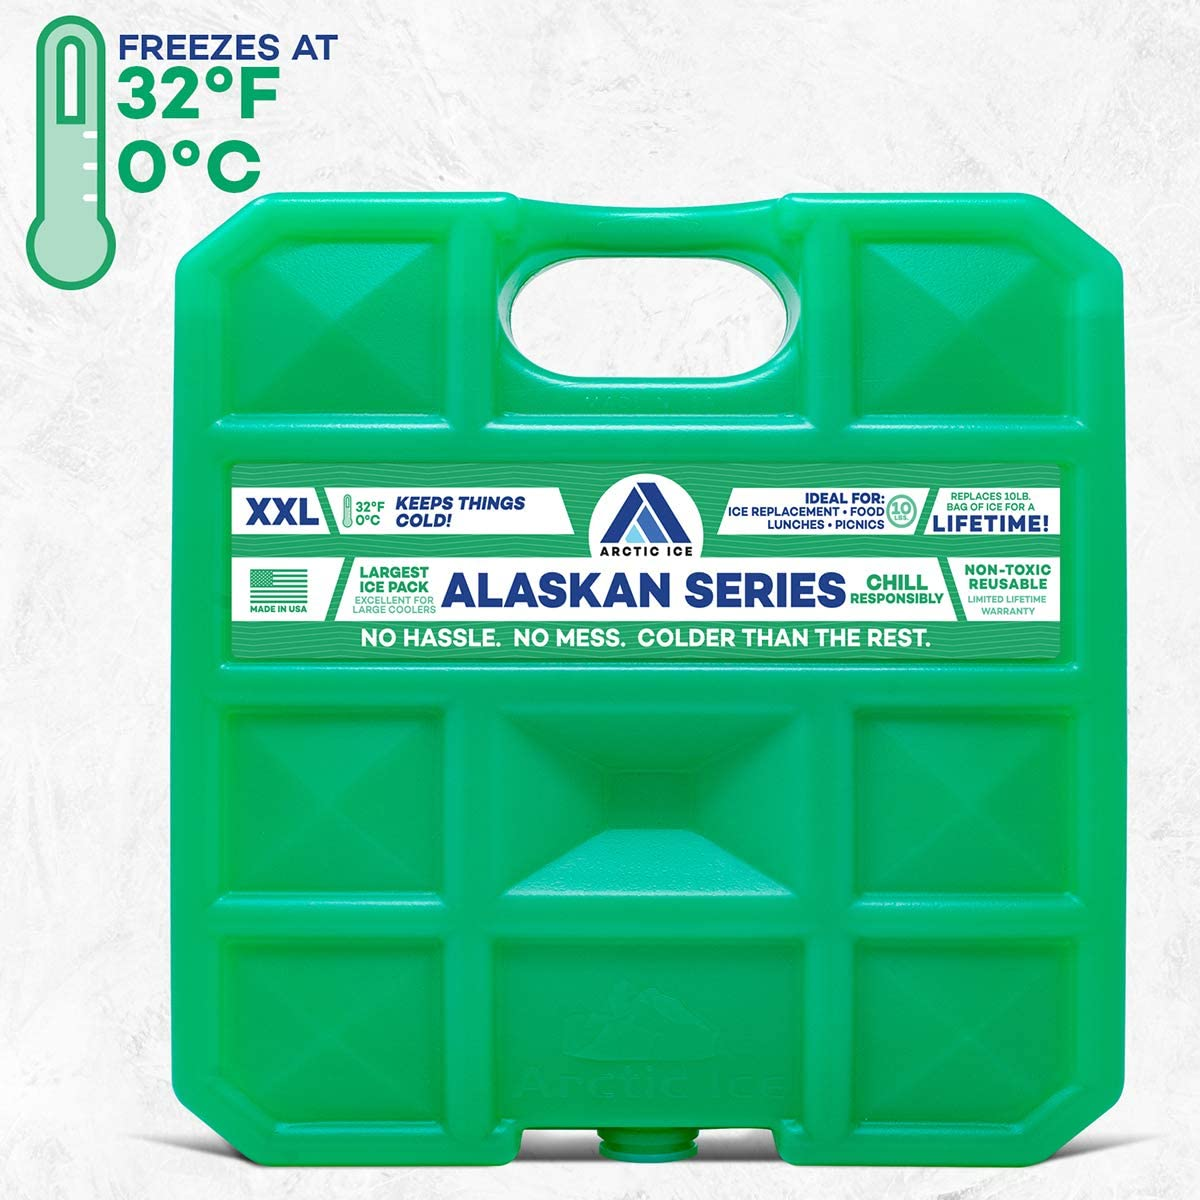 Arctic Ice Alaskan Series Reusable Ice Pack for Coolers, Lunch Boxes, Camping, Fishing, Hunting and More, Freezes at 33.8F - XX-Large (10 LBS)